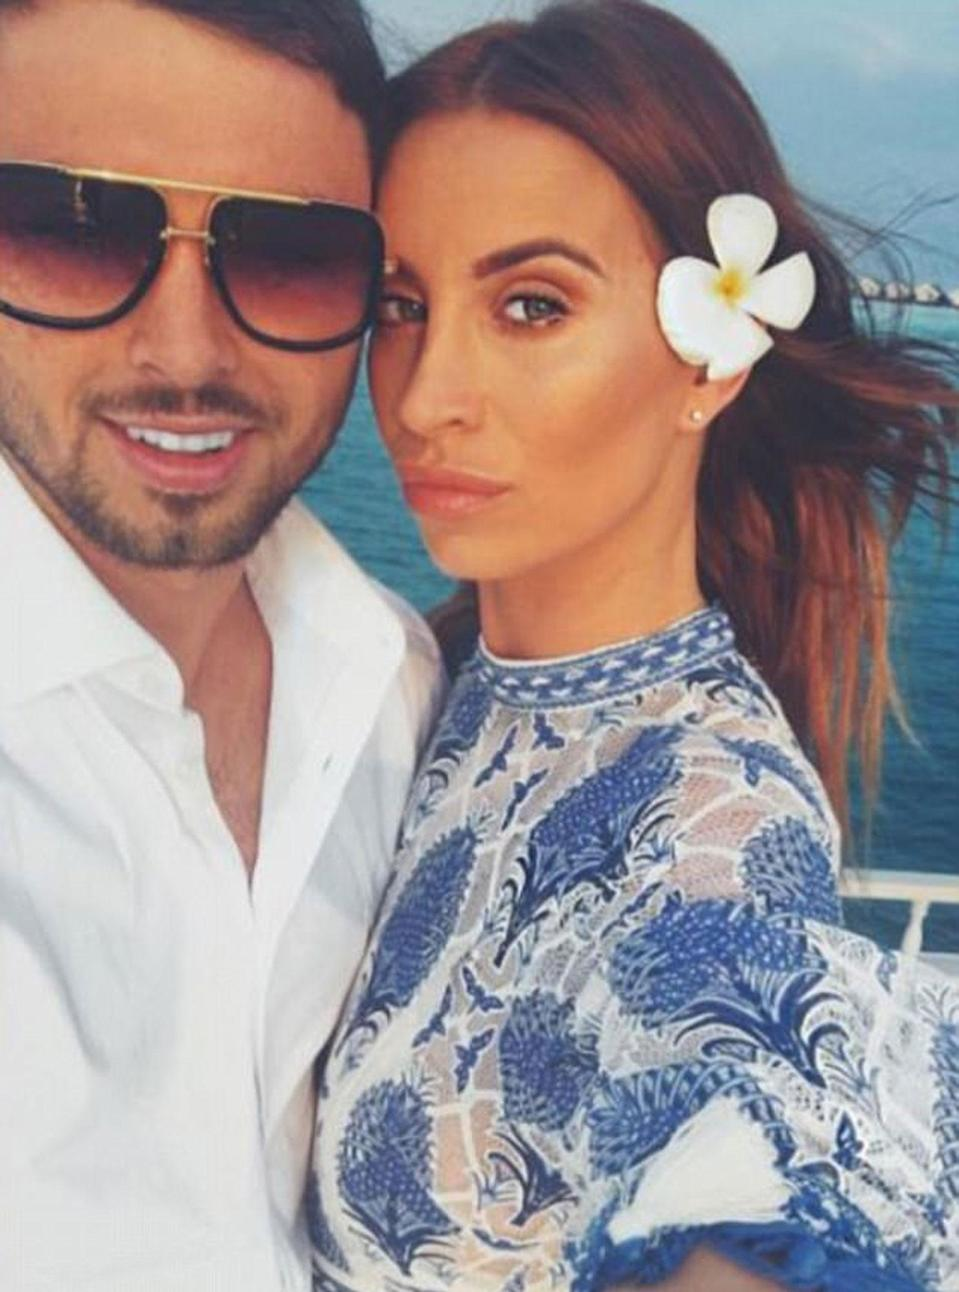 Ferne and Arthur first met in Ibiza last year. Copyright: [Instagram]